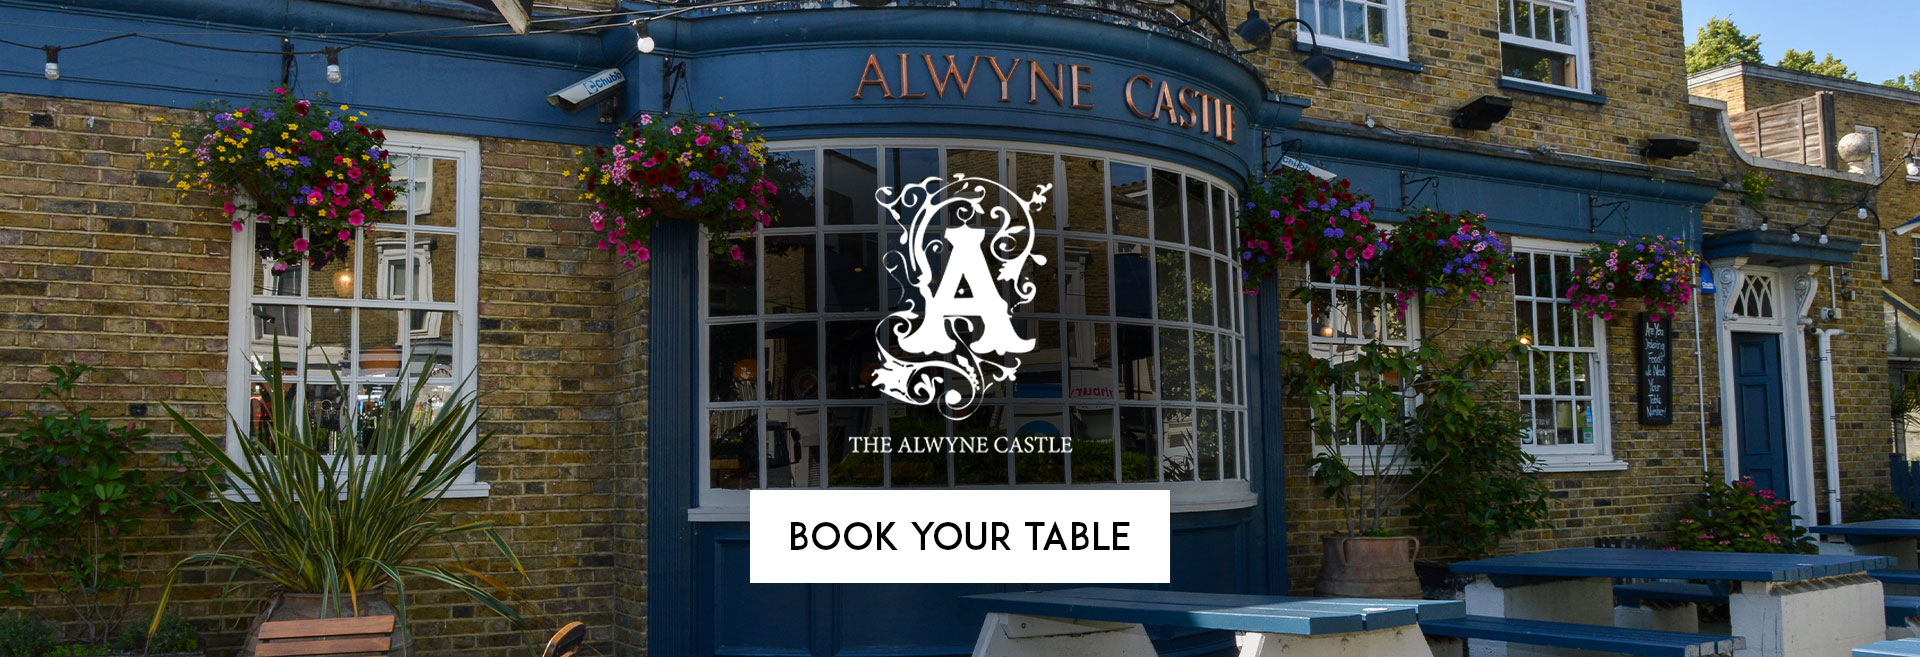 Book Your Table at The Alwyne Castle